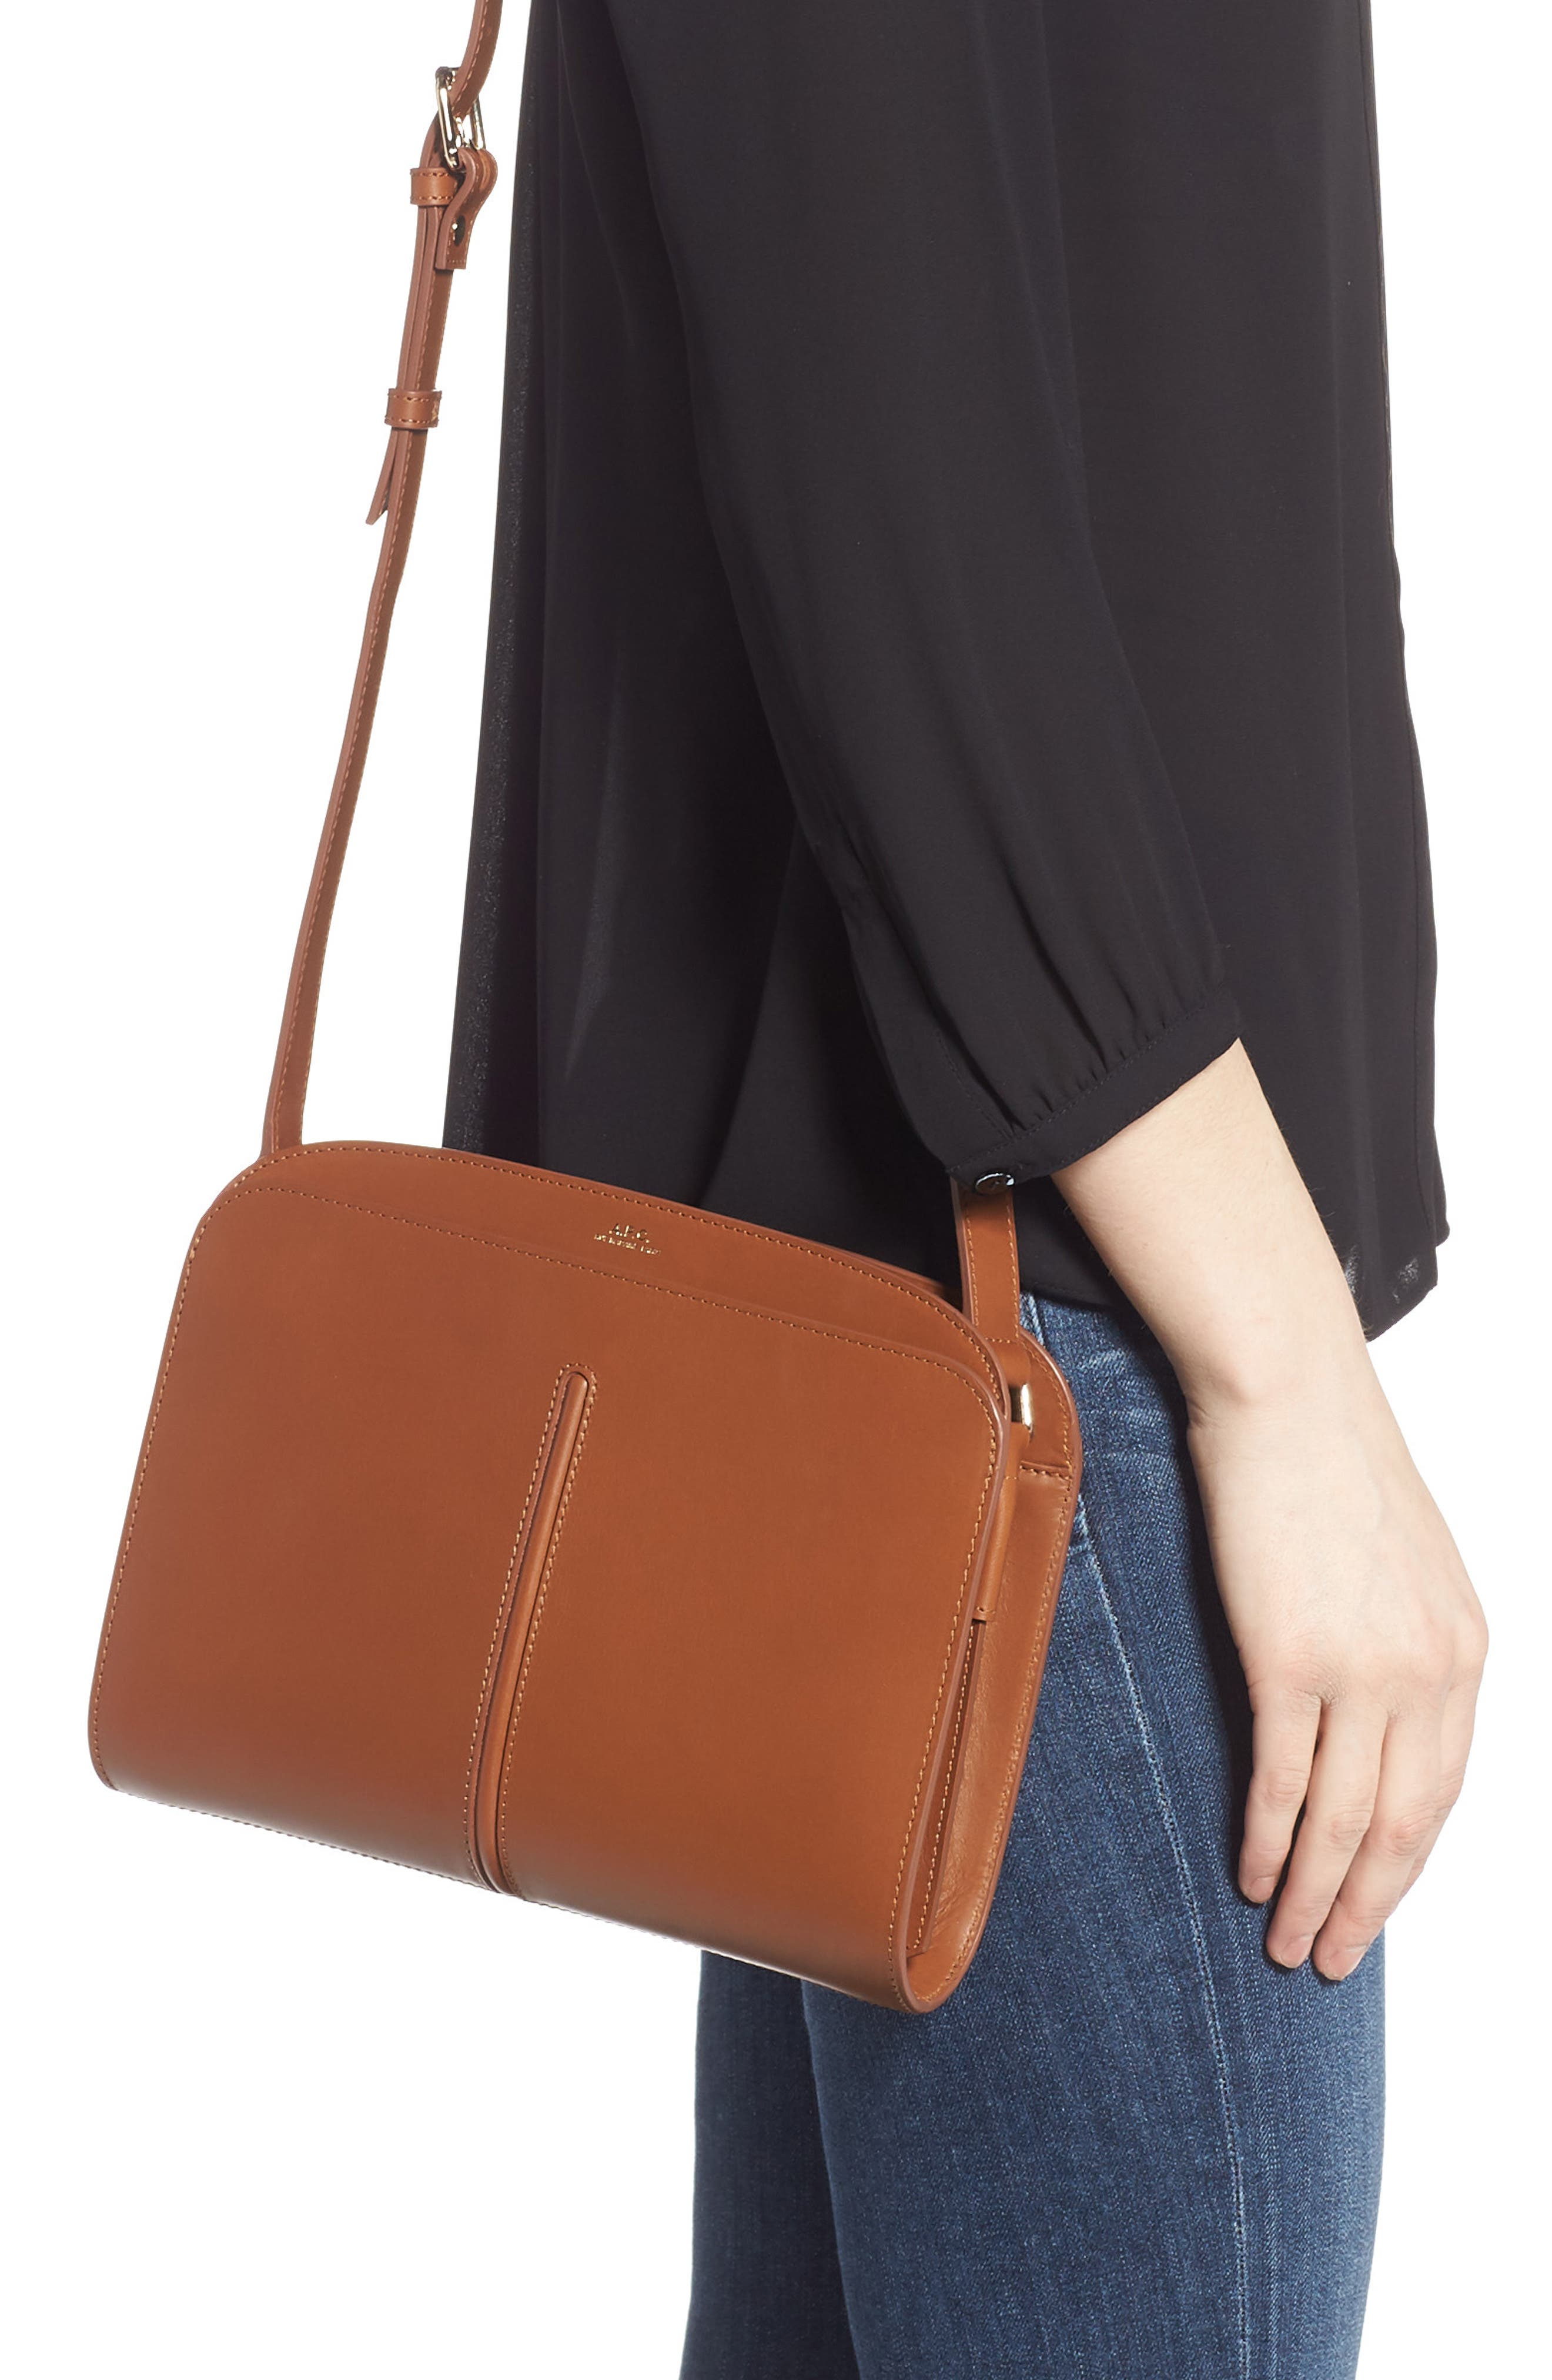 951f20af39 Women s Crossbody Bags New Arrivals  Clothing